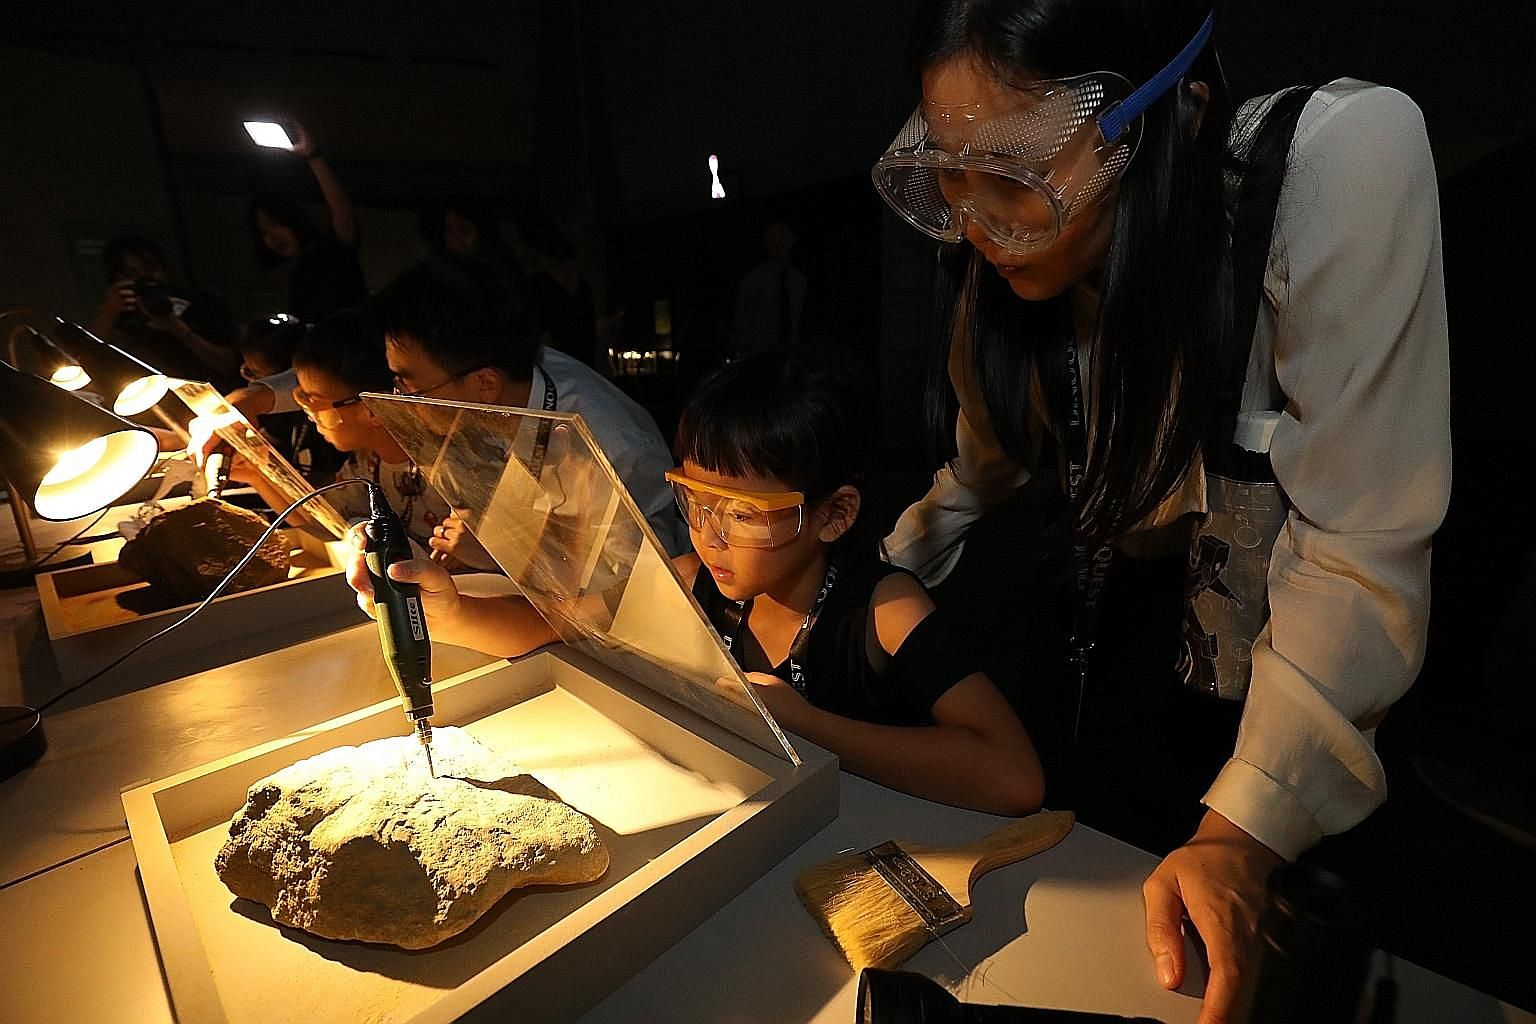 Visitors drilling into rocks to uncover fossils in a hands-on activity at the DinoQuest exhibition in Science Centre Singapore yesterday. The exhibition, which uses digital technology such as holograms, will be open to the public from next Saturday t